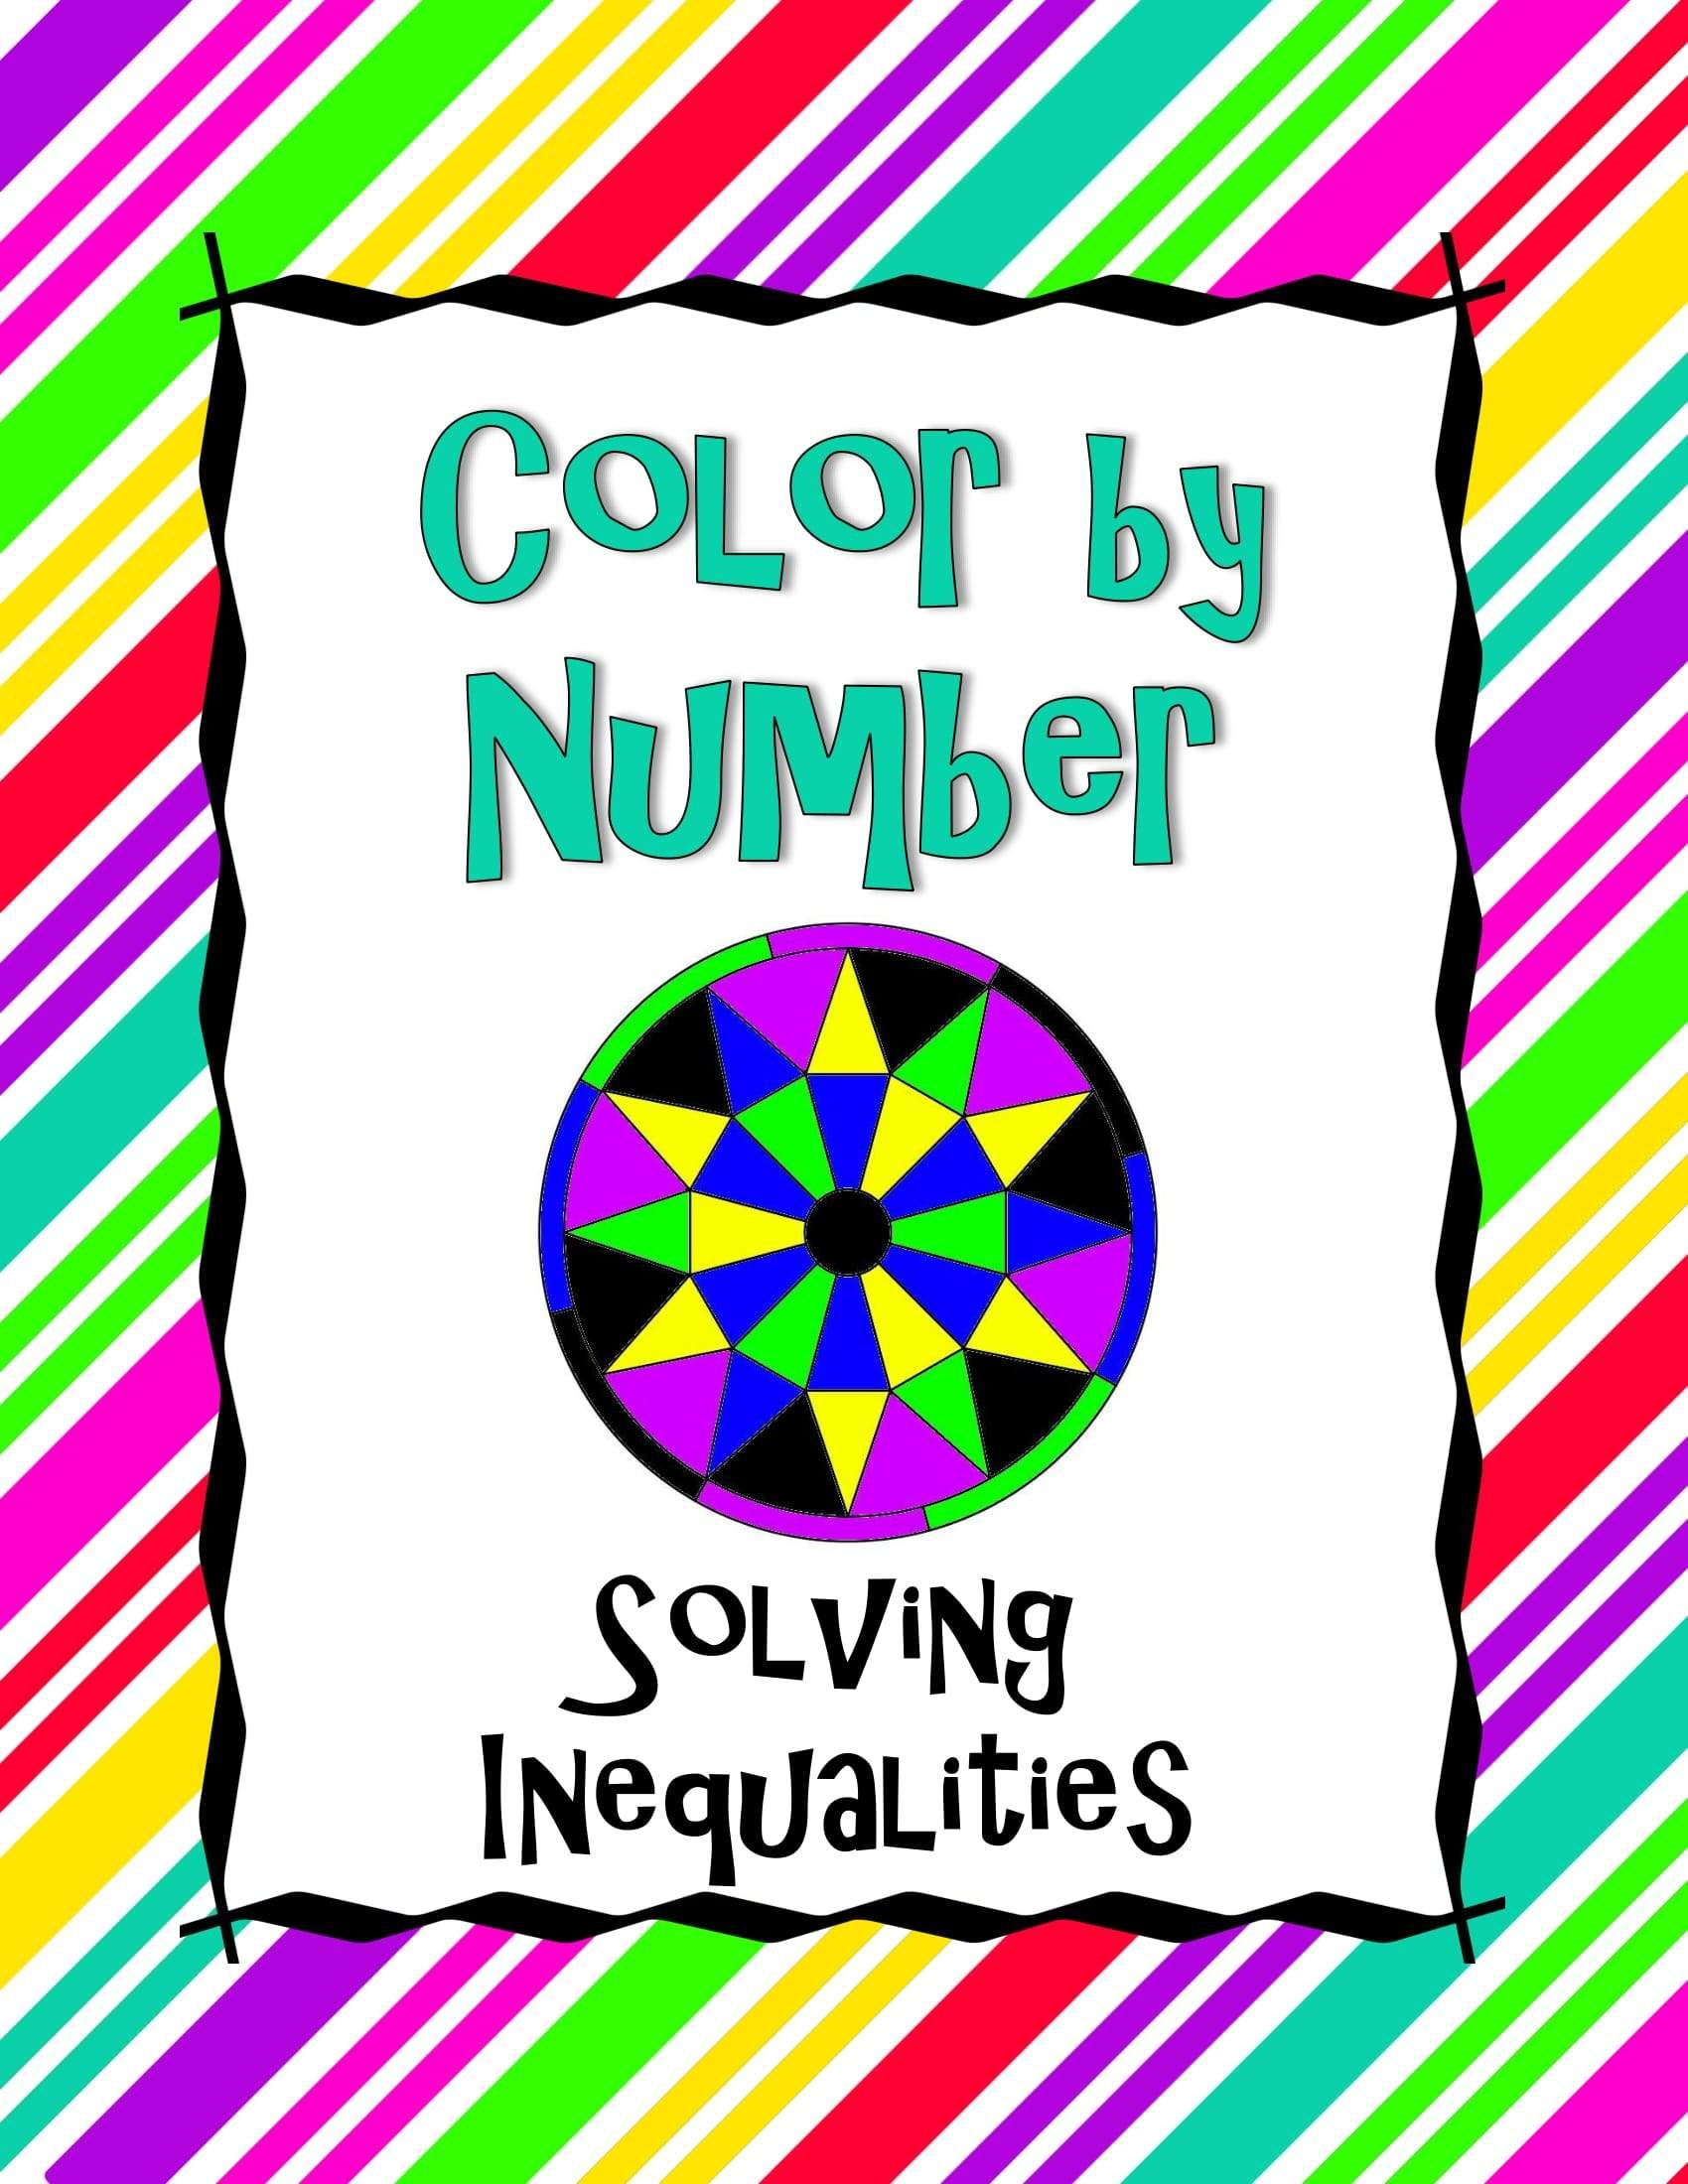 Solving inequalities color by number solving equations